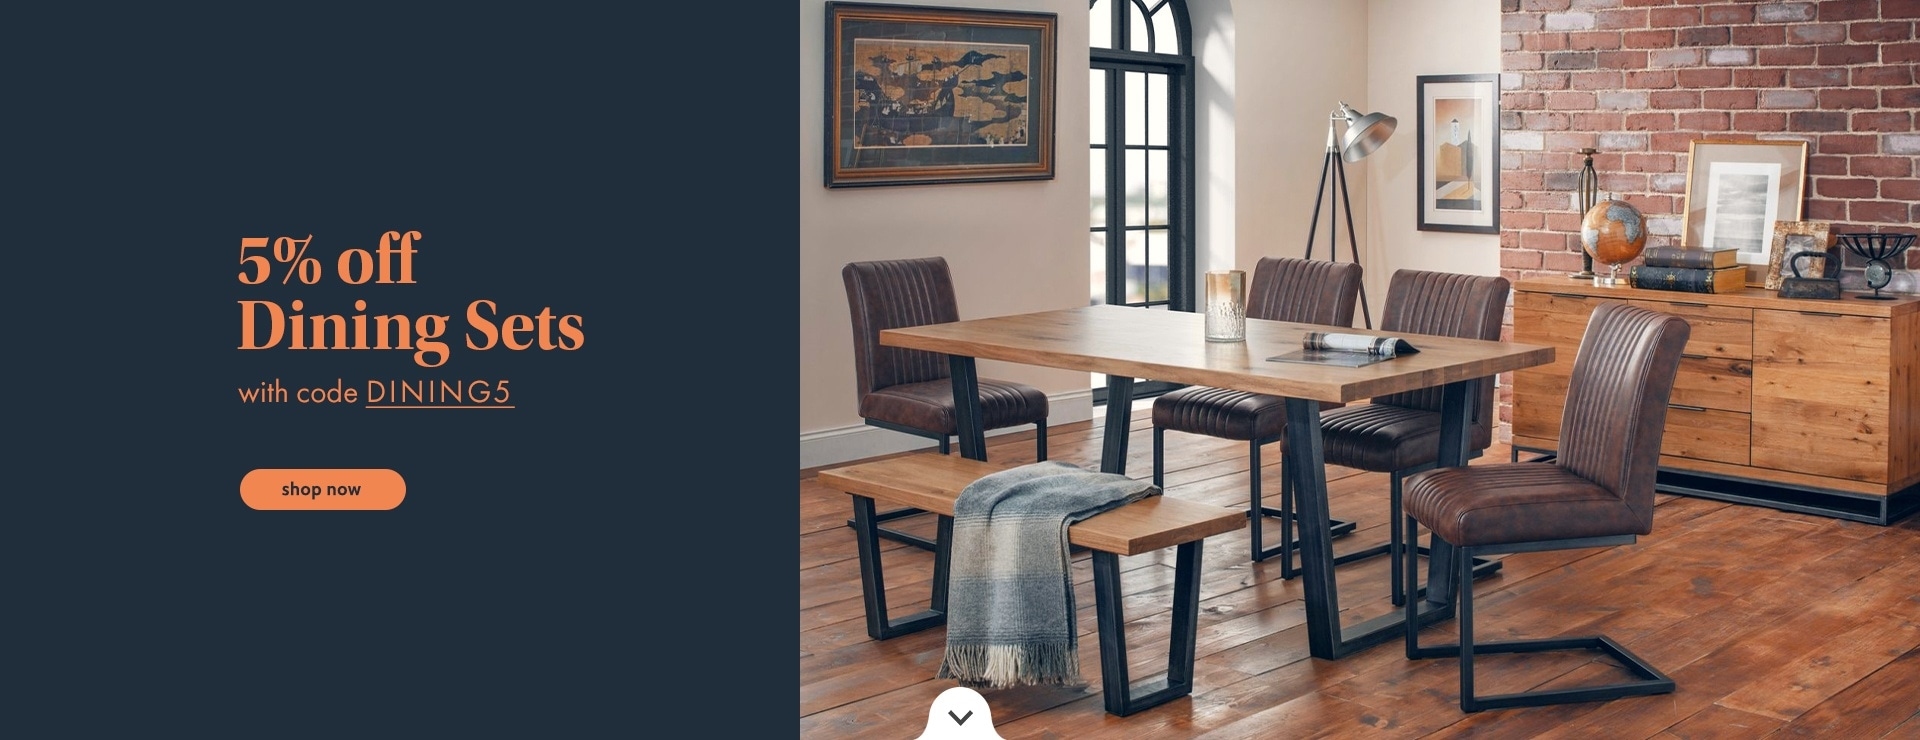 5% OFF Dining Sets